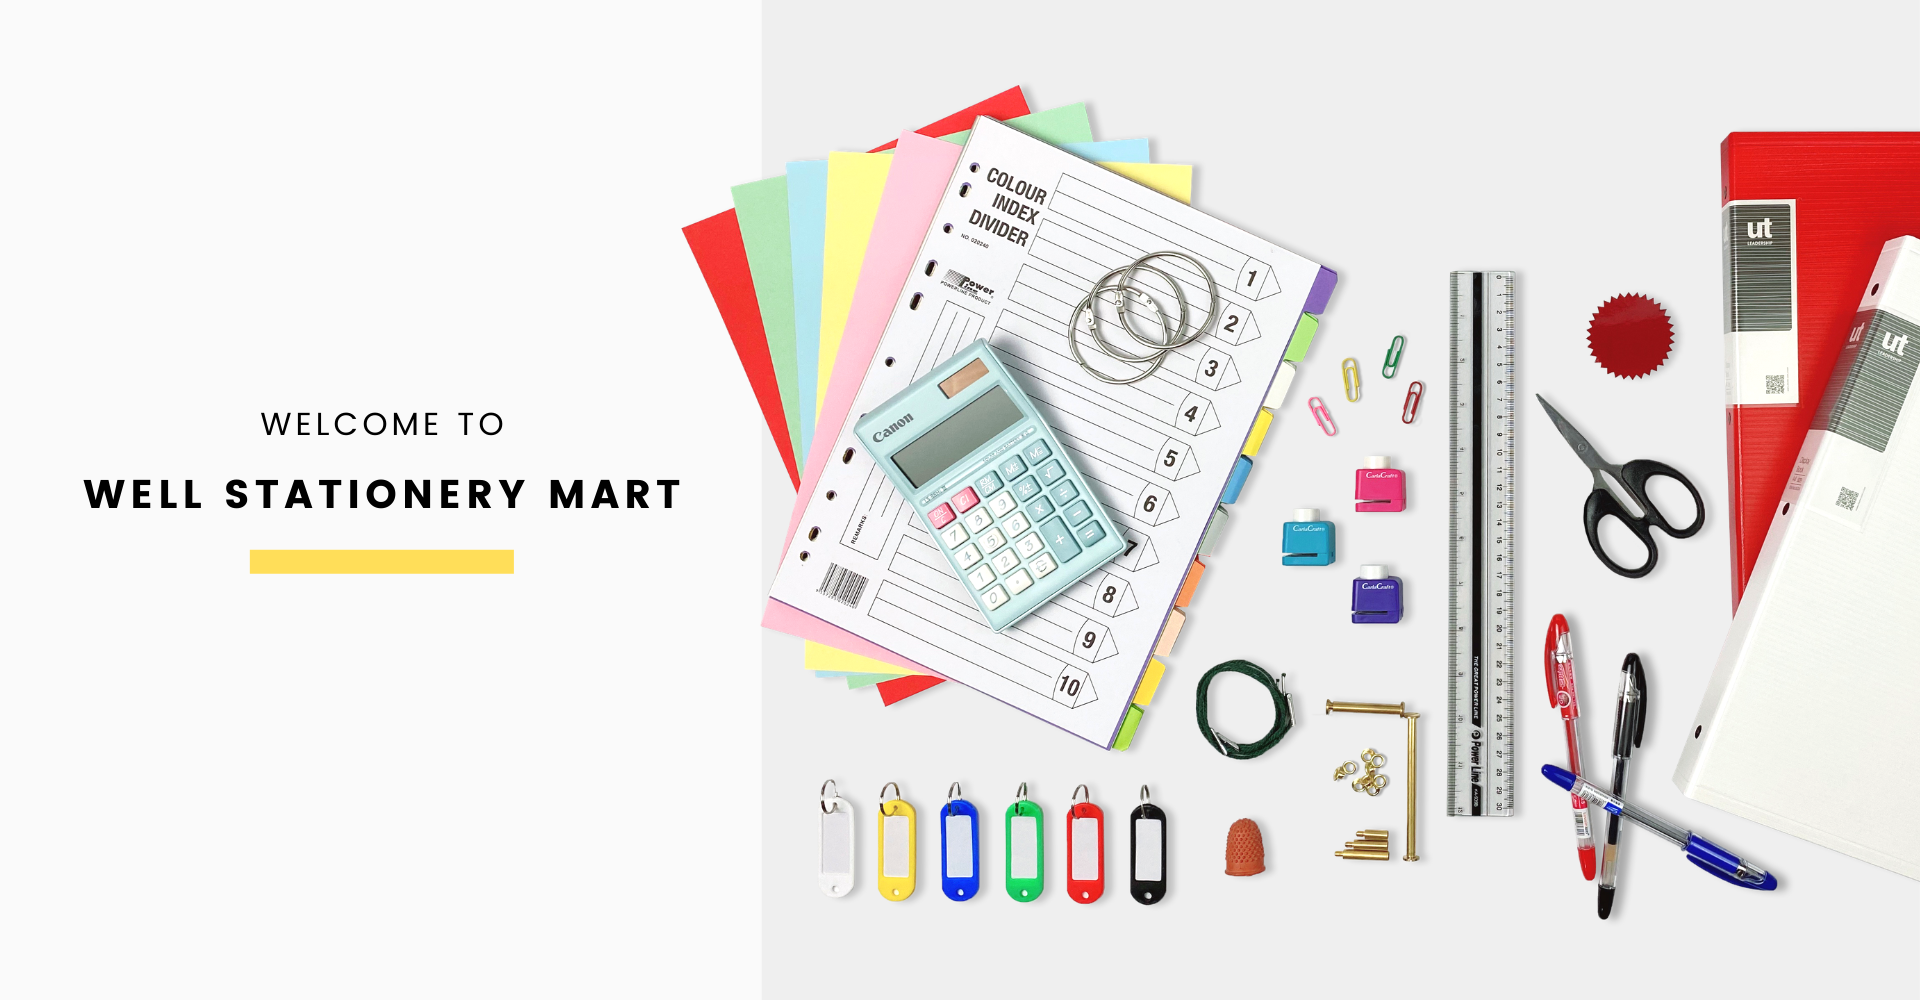 Welcome to Well Stationery